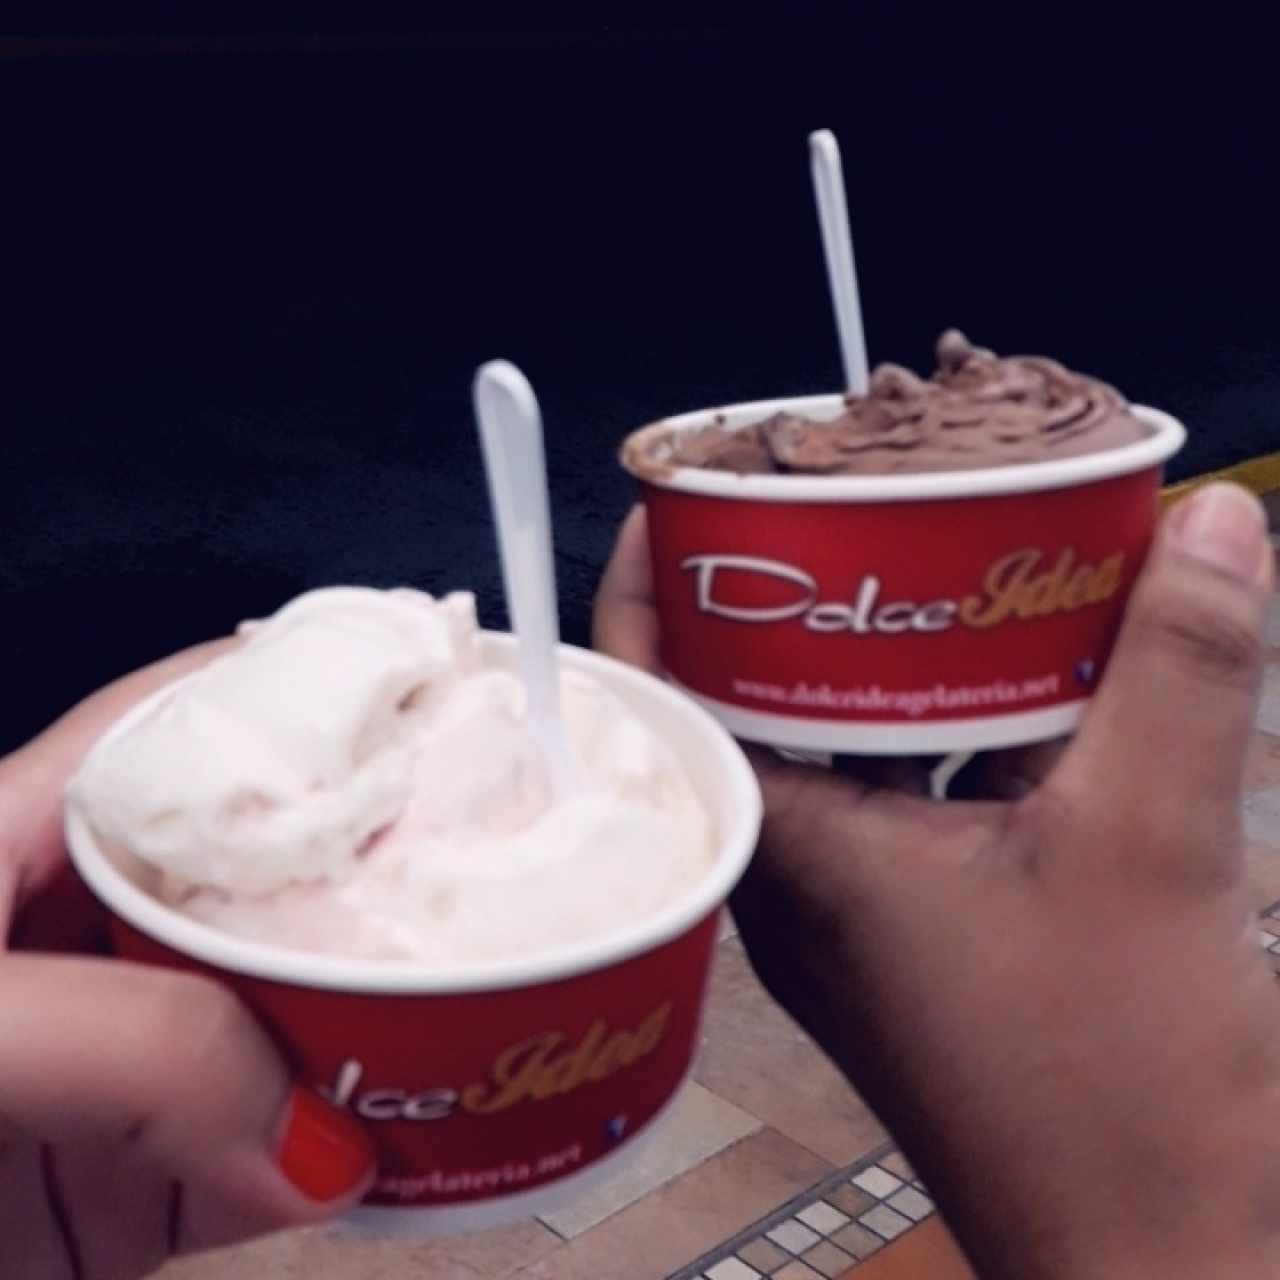 Helado de cheesecake y chocolate